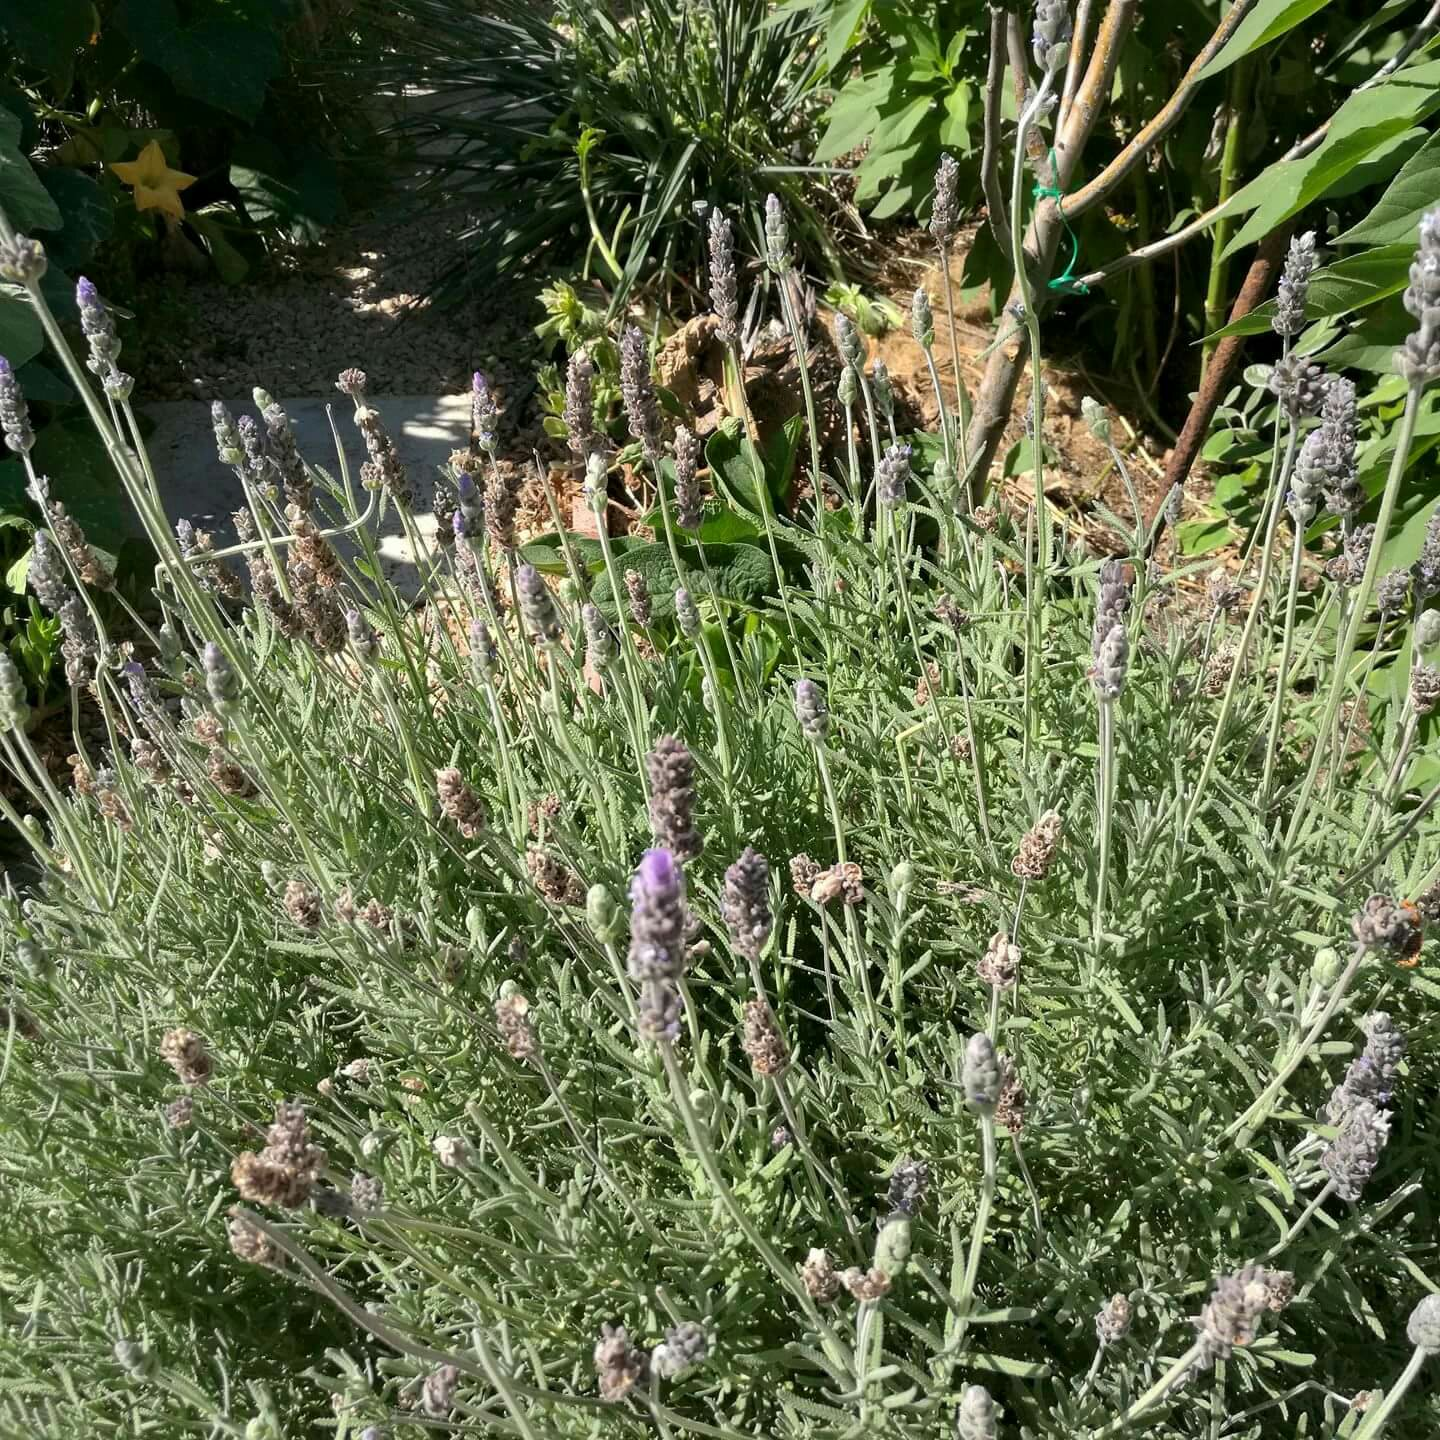 One of our Lavender bushes